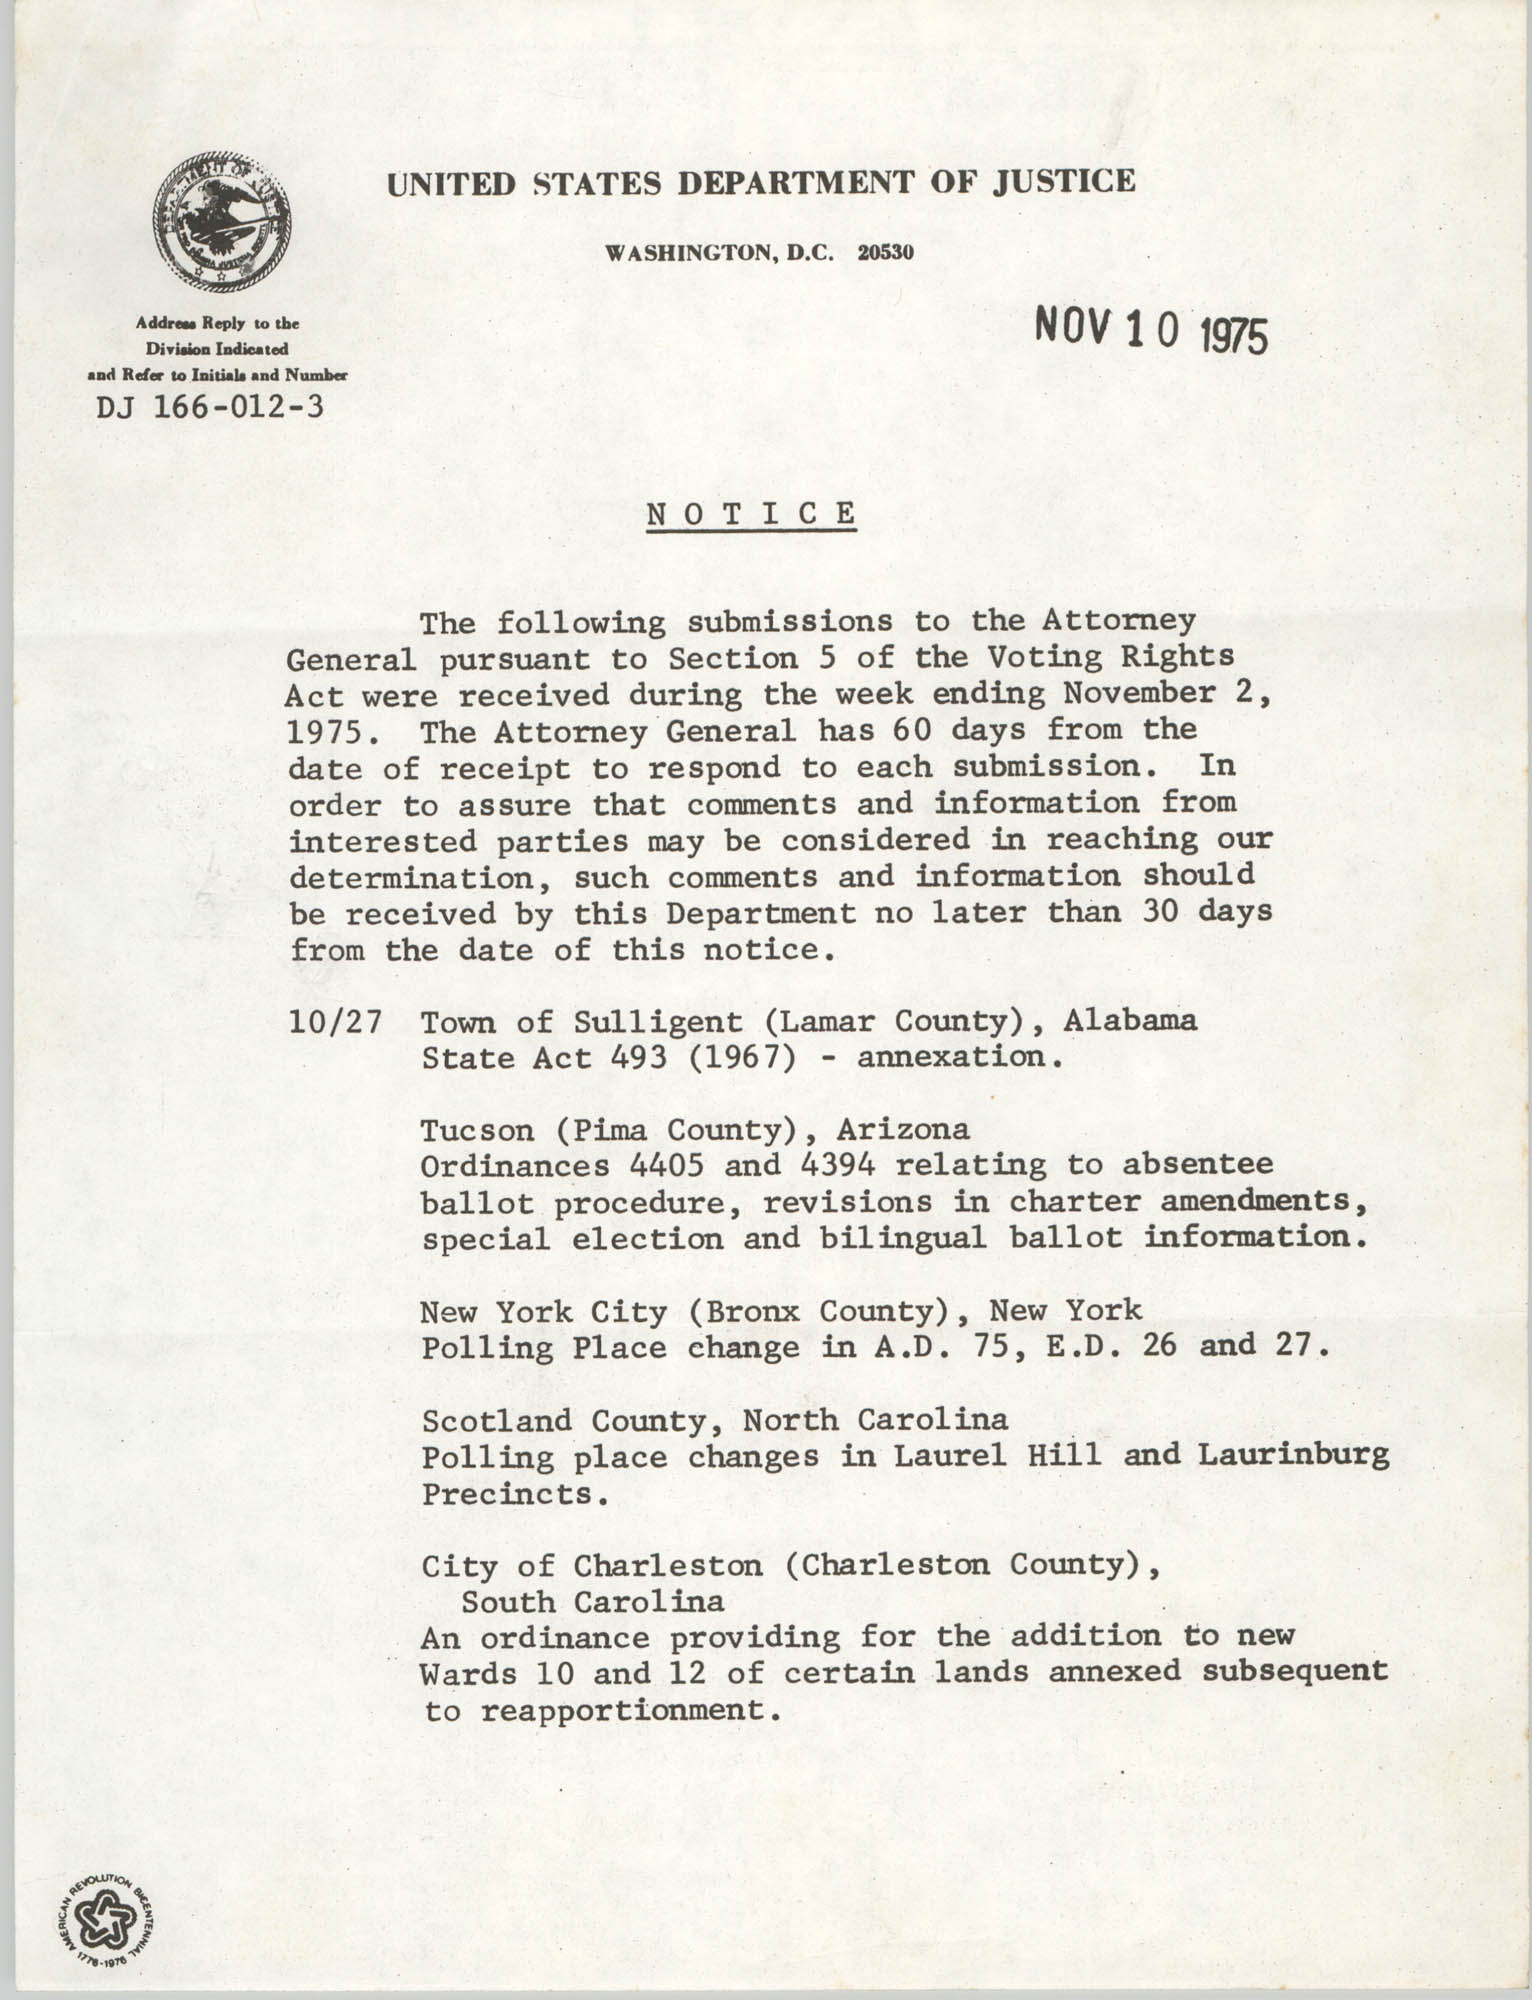 United States Department of Justice Notice, November 10, 1975